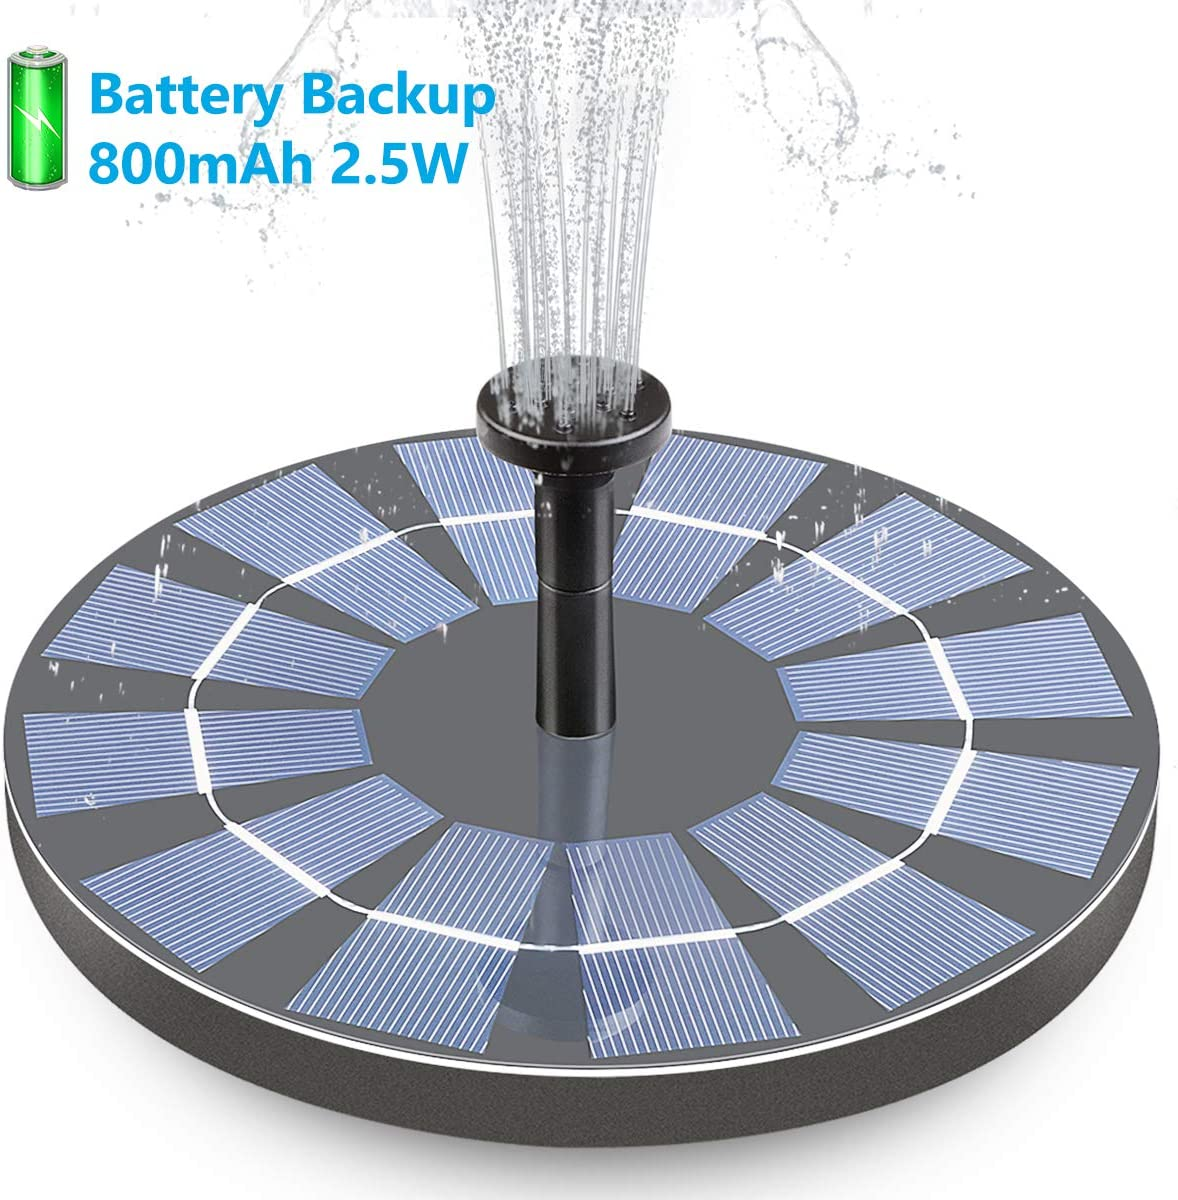 Hiluckey Solar Fountain with Battery Backup